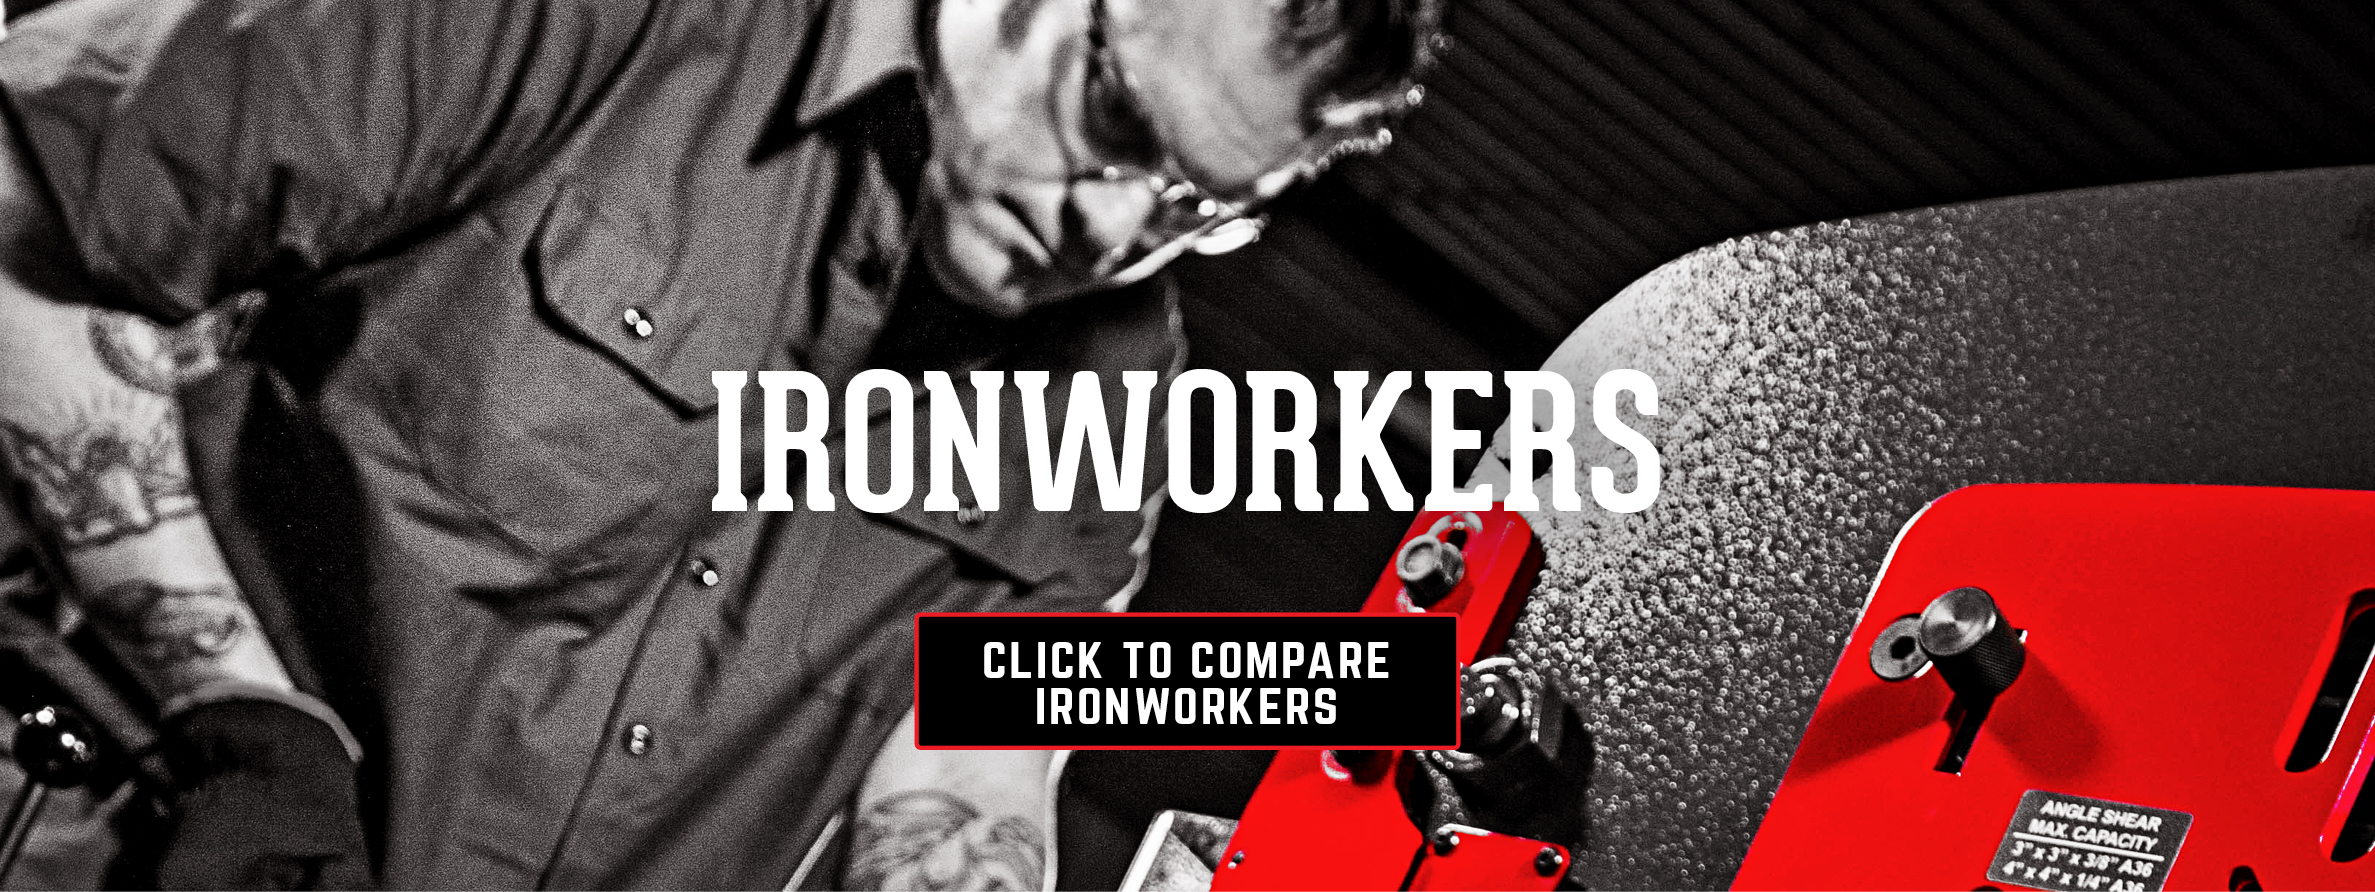 Click to Compare Ironworkers